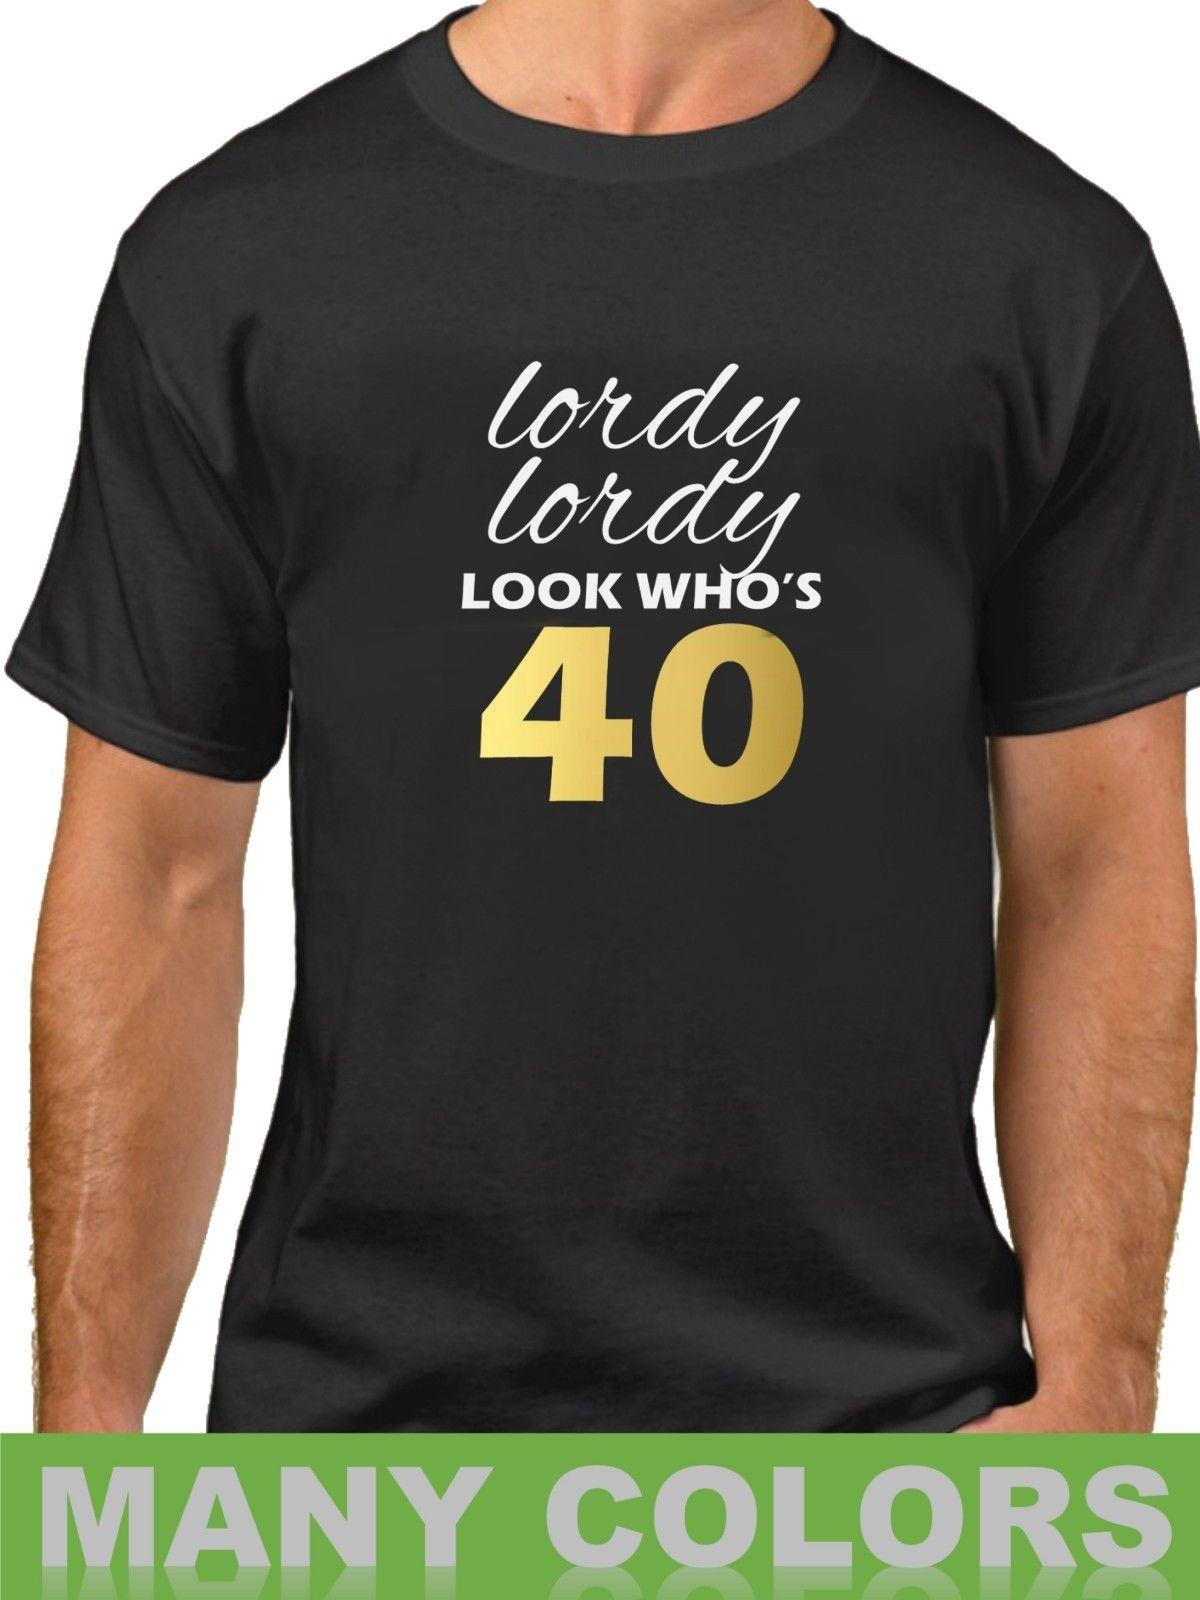 Lordy Look WhoS 40 Shirt 40th Birthday T Gift Forty Bday Present Funny Unisex Casual Tshirt Shirts For Sale Printed From Buyfriendly